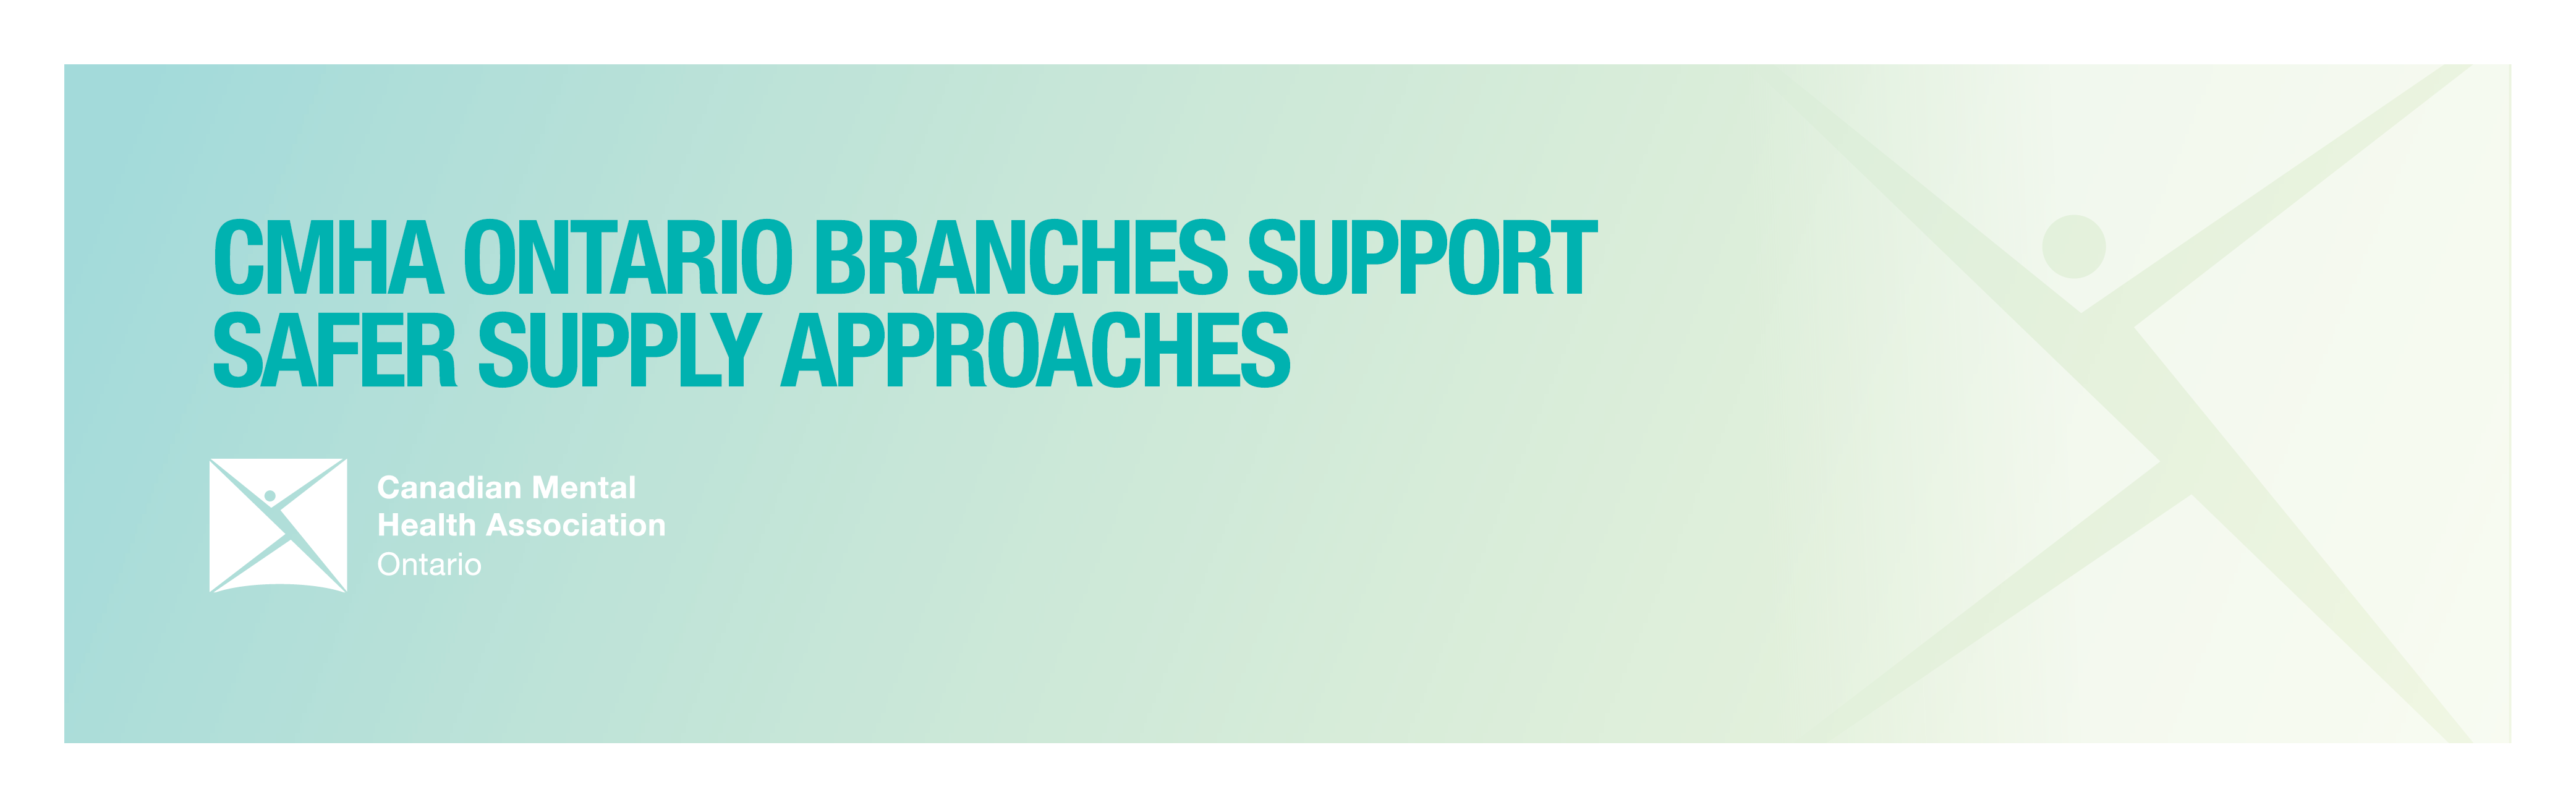 Expand access to harm reduction interventions during COVID-19: CMHA Ontario branches support safer supply approaches